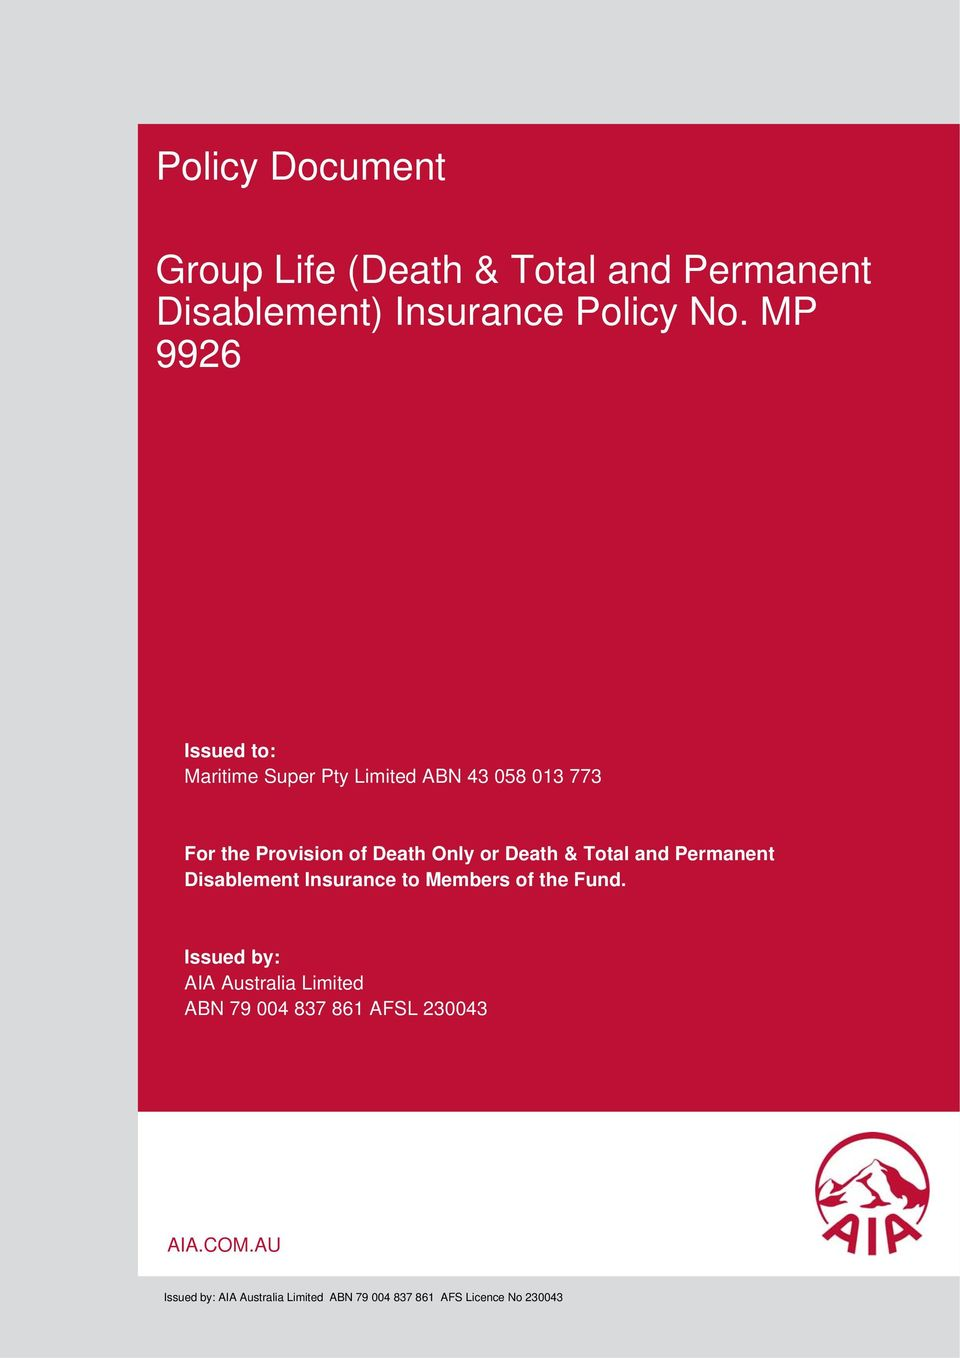 Death & Total and Permanent Disablement Insurance to Members of the Fund.